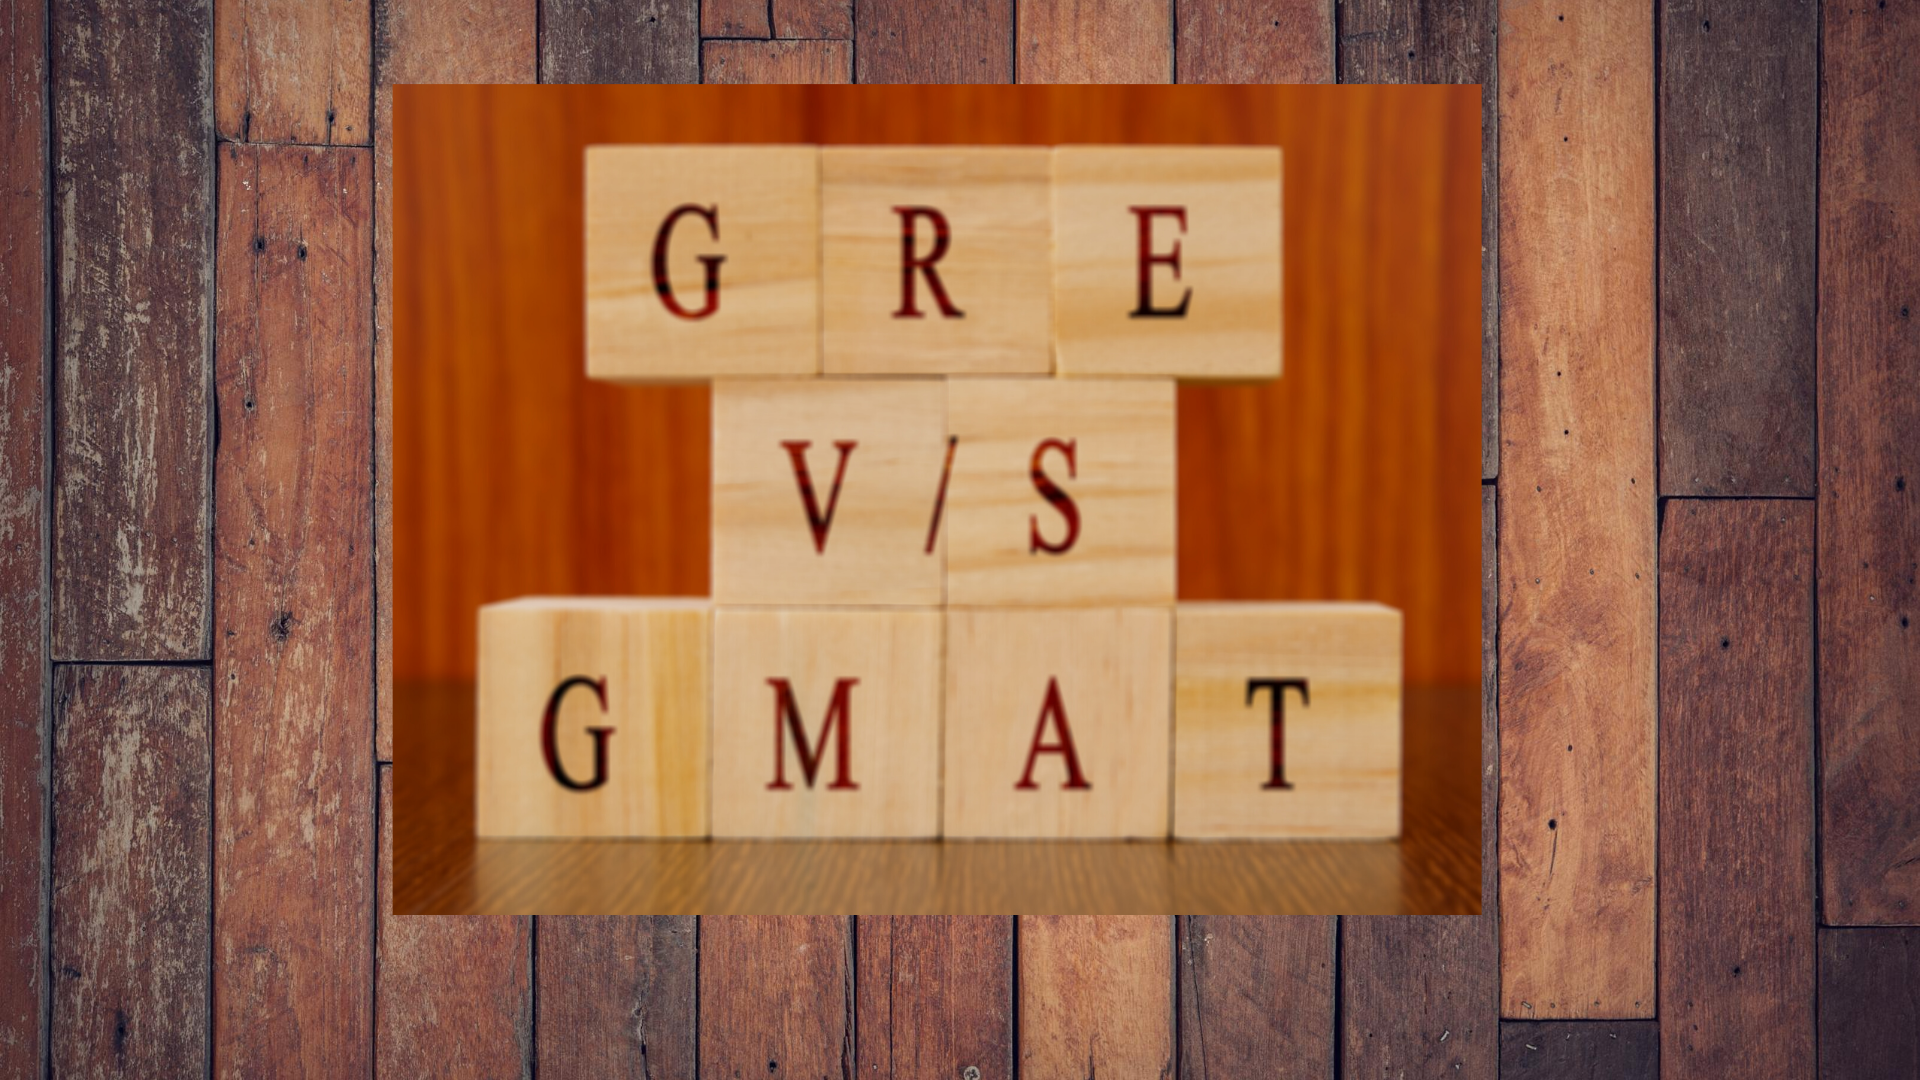 GMAT GRE featured_